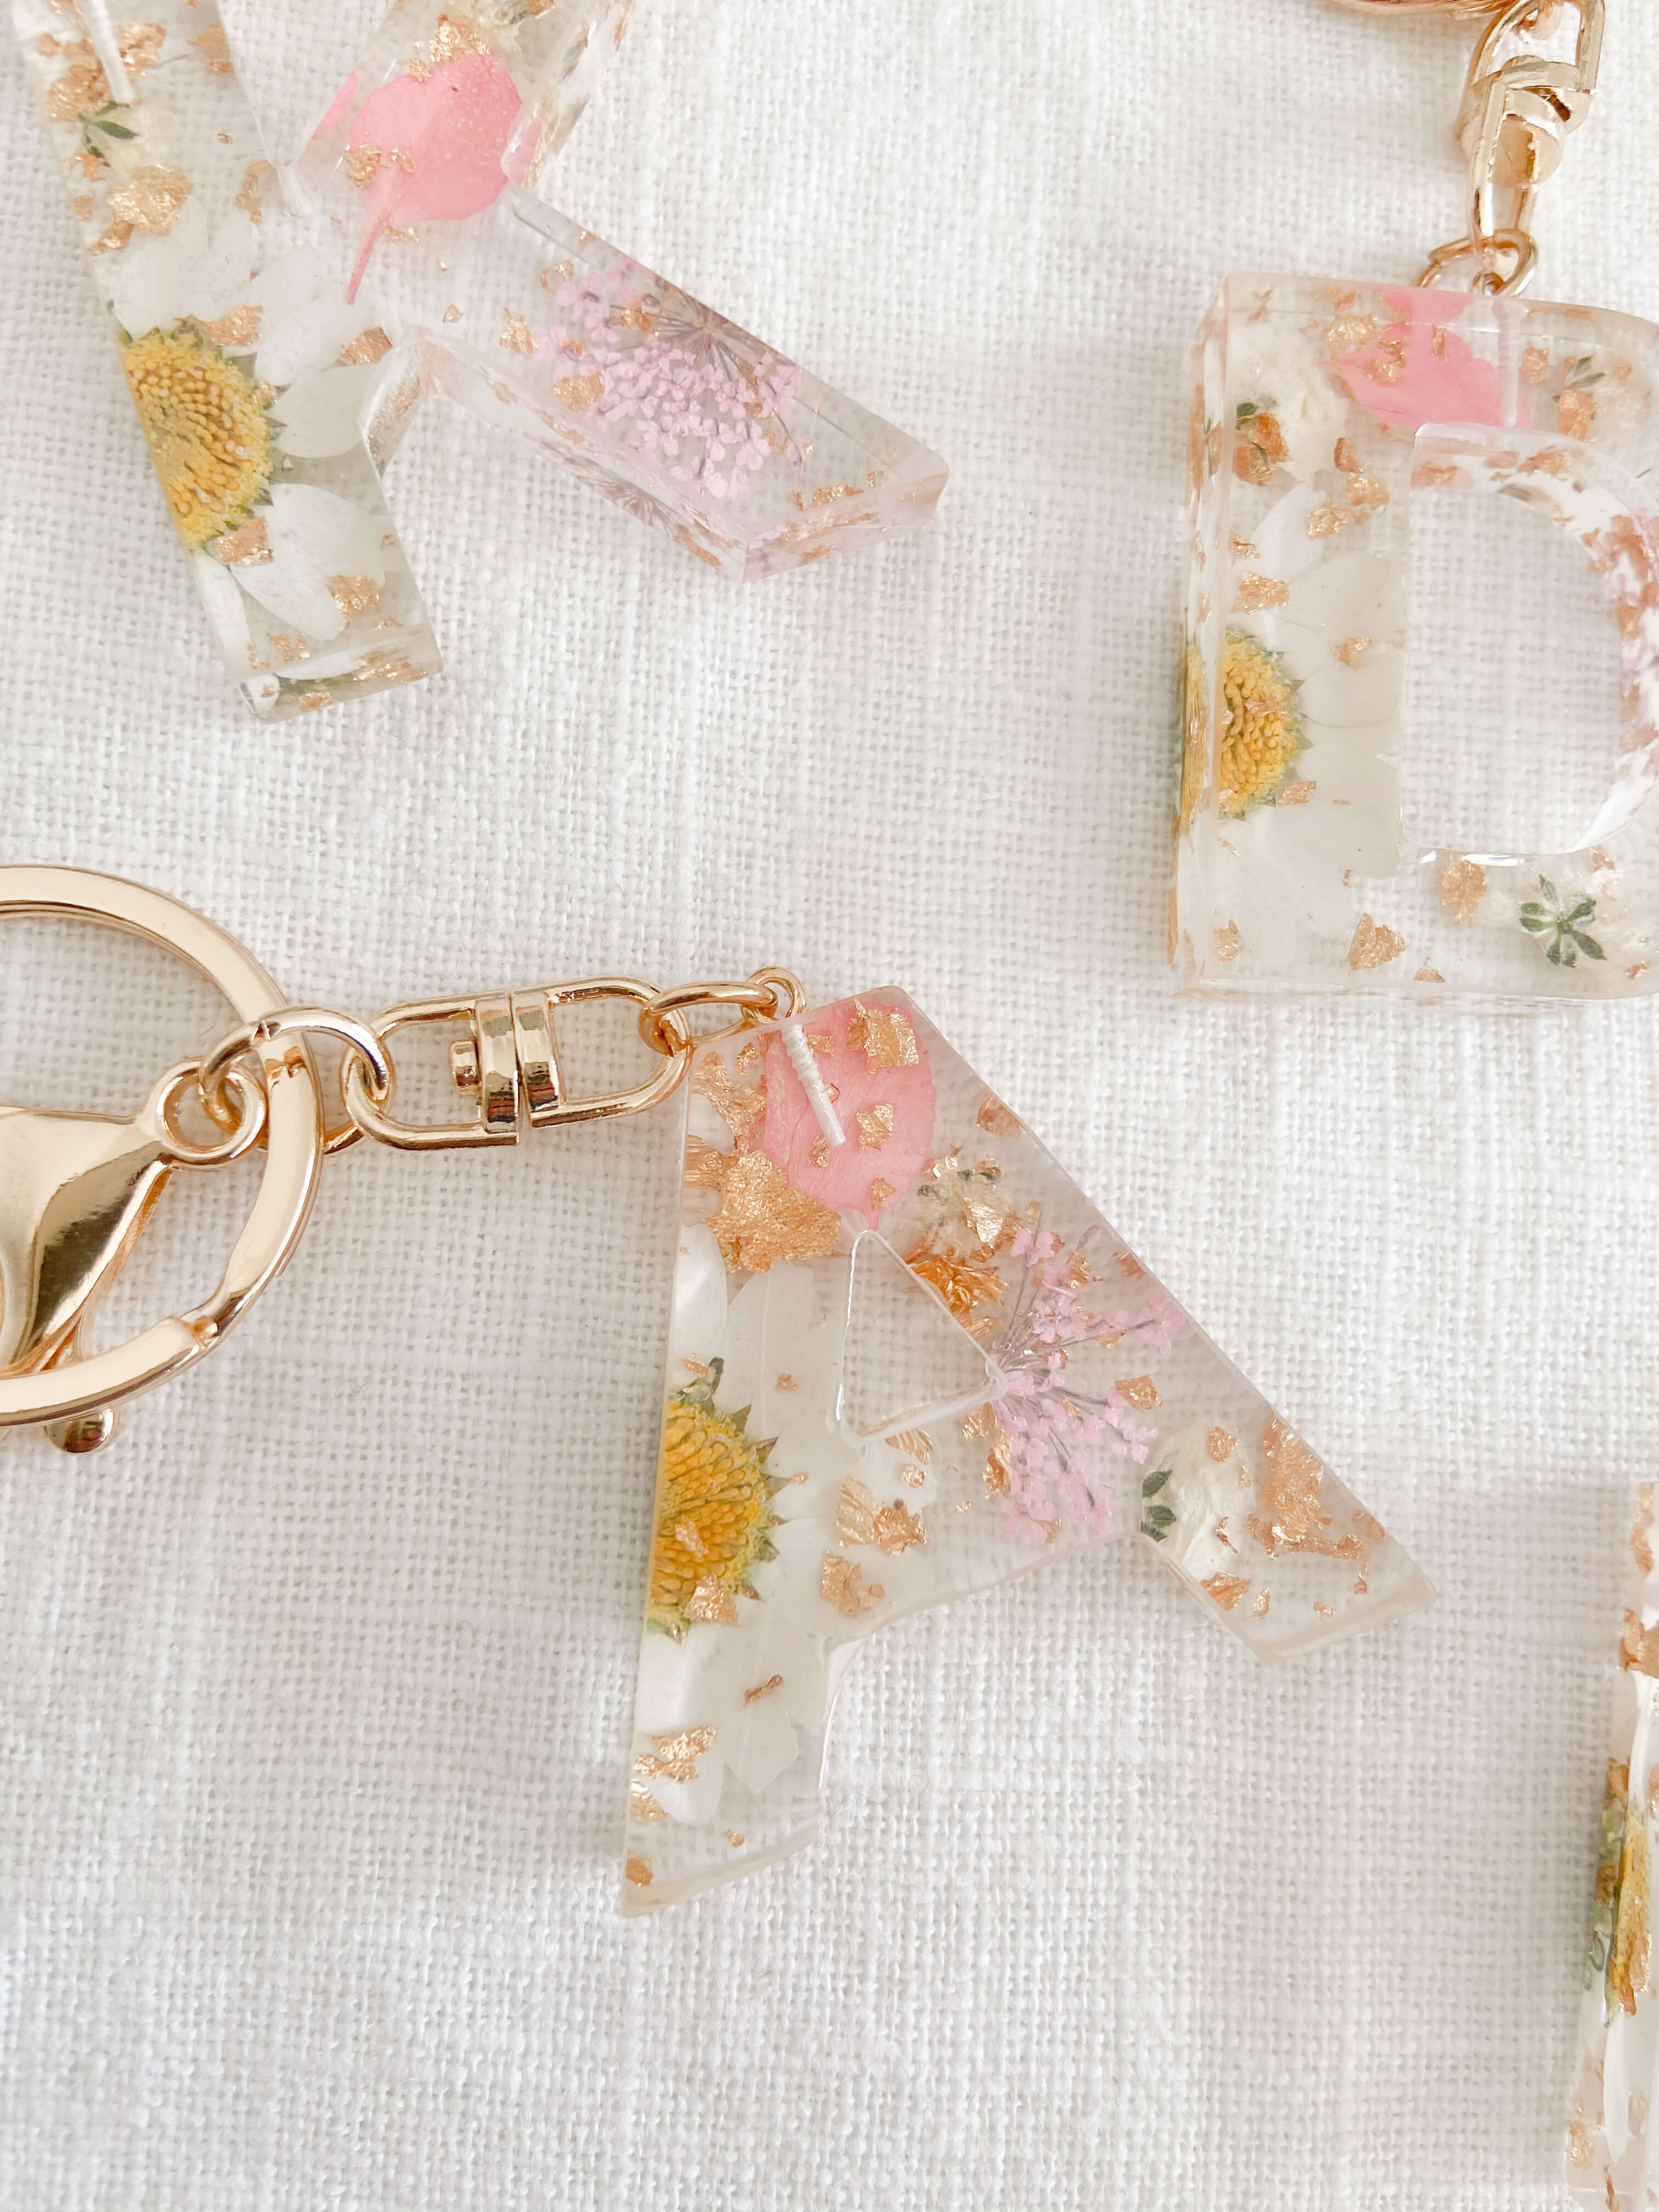 Pressed flower keychain with pink and white flowers. Resin keyring